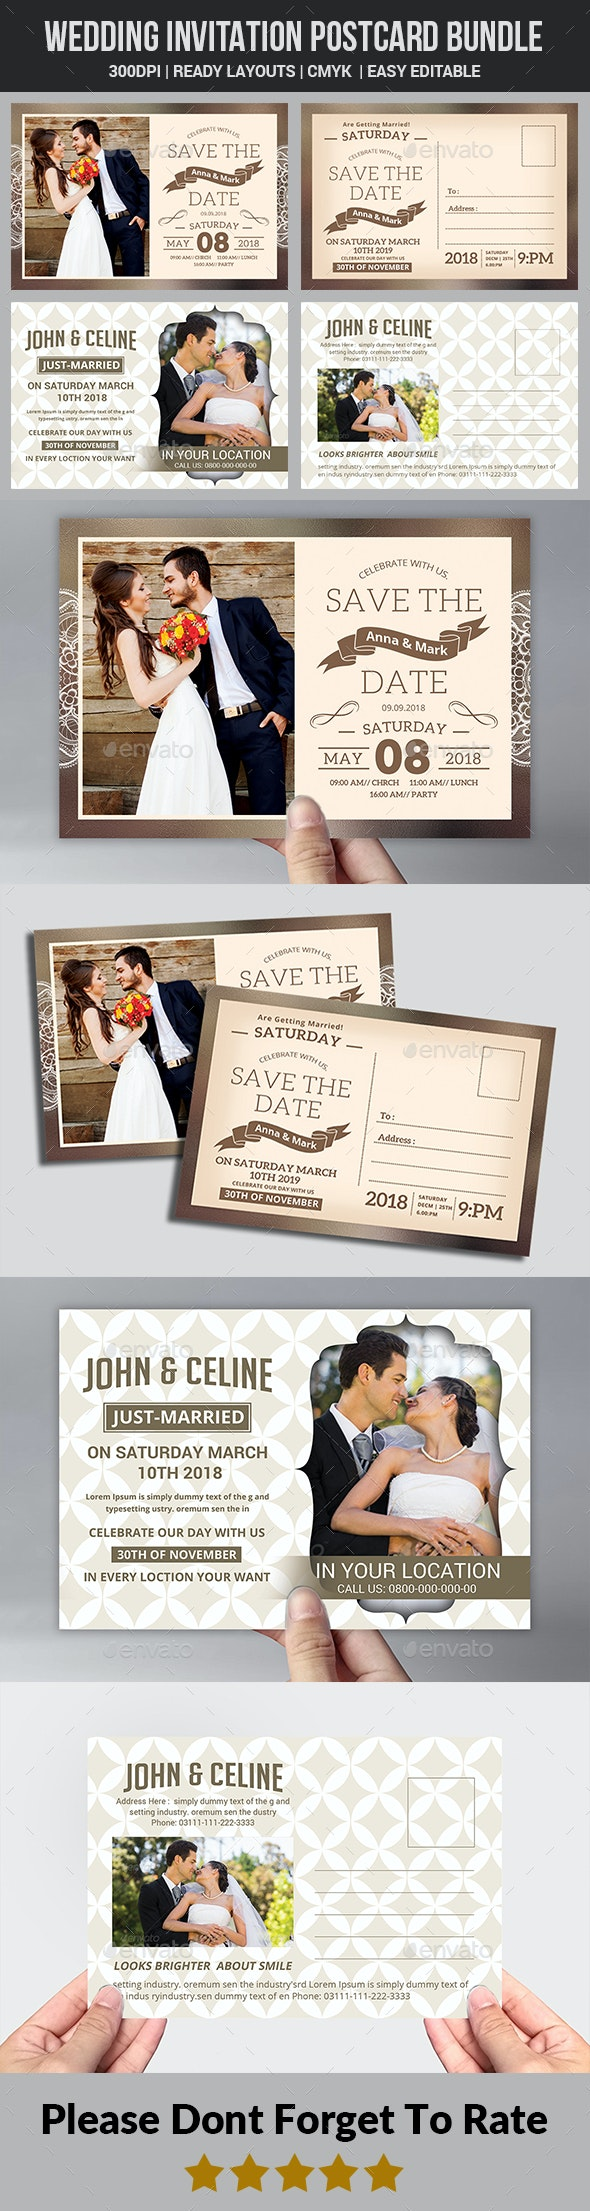 Wedding Invitation Postcard Bundle - Weddings Cards & Invites